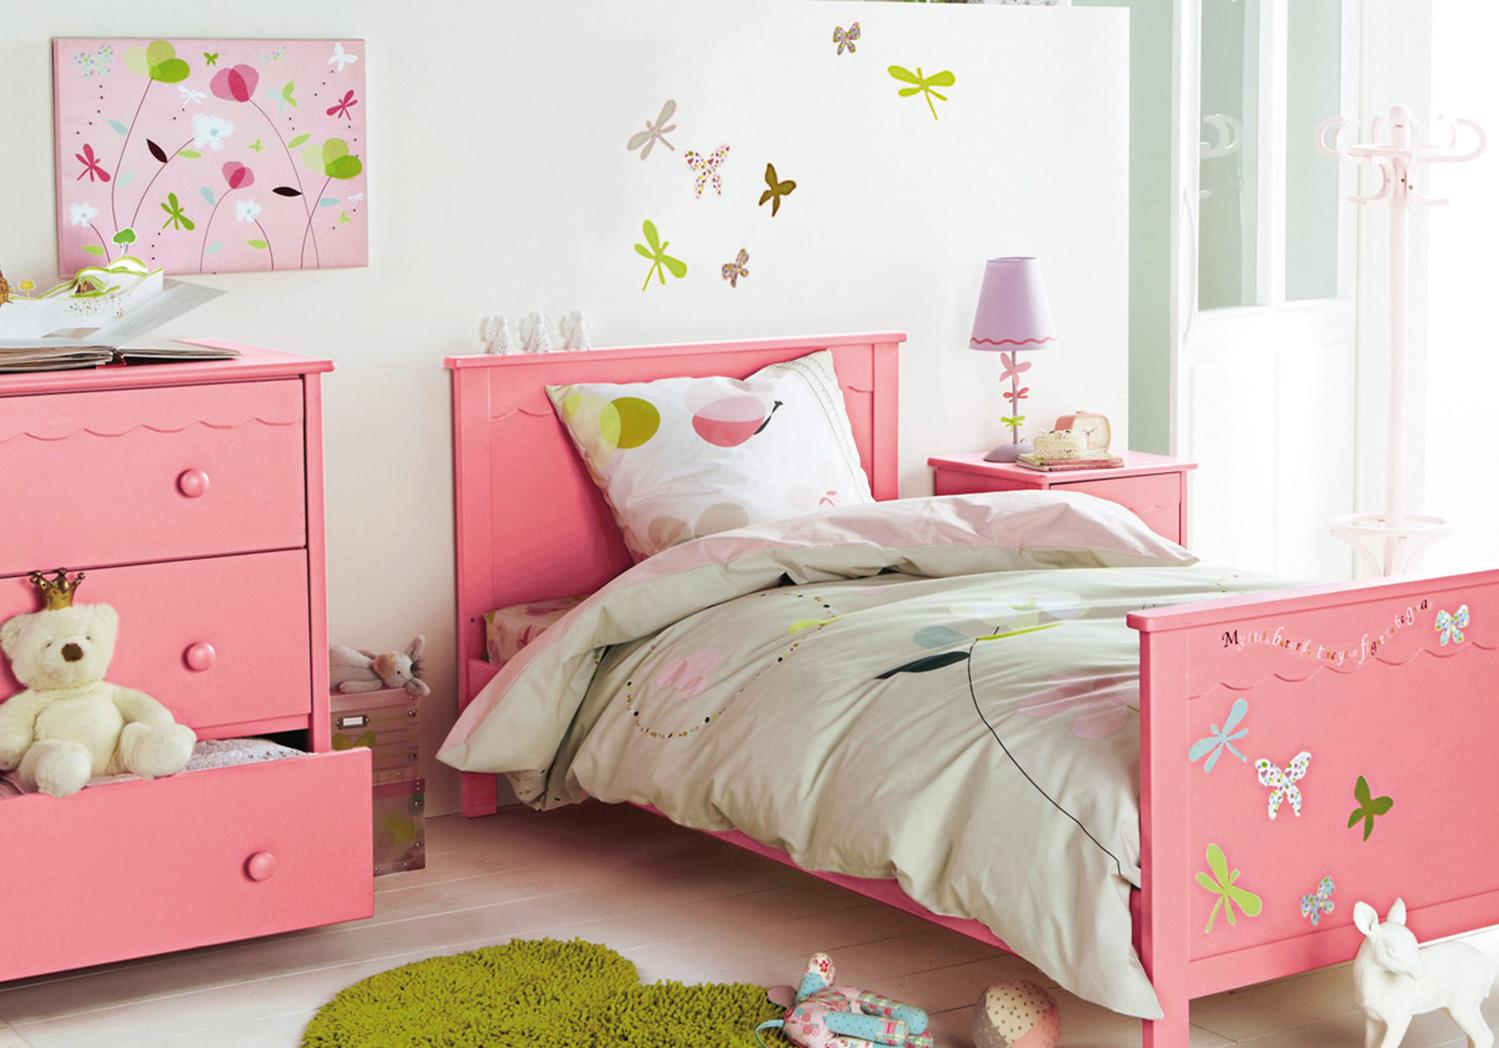 Color Full Kids Room Decorating Ideas On A Budget 19